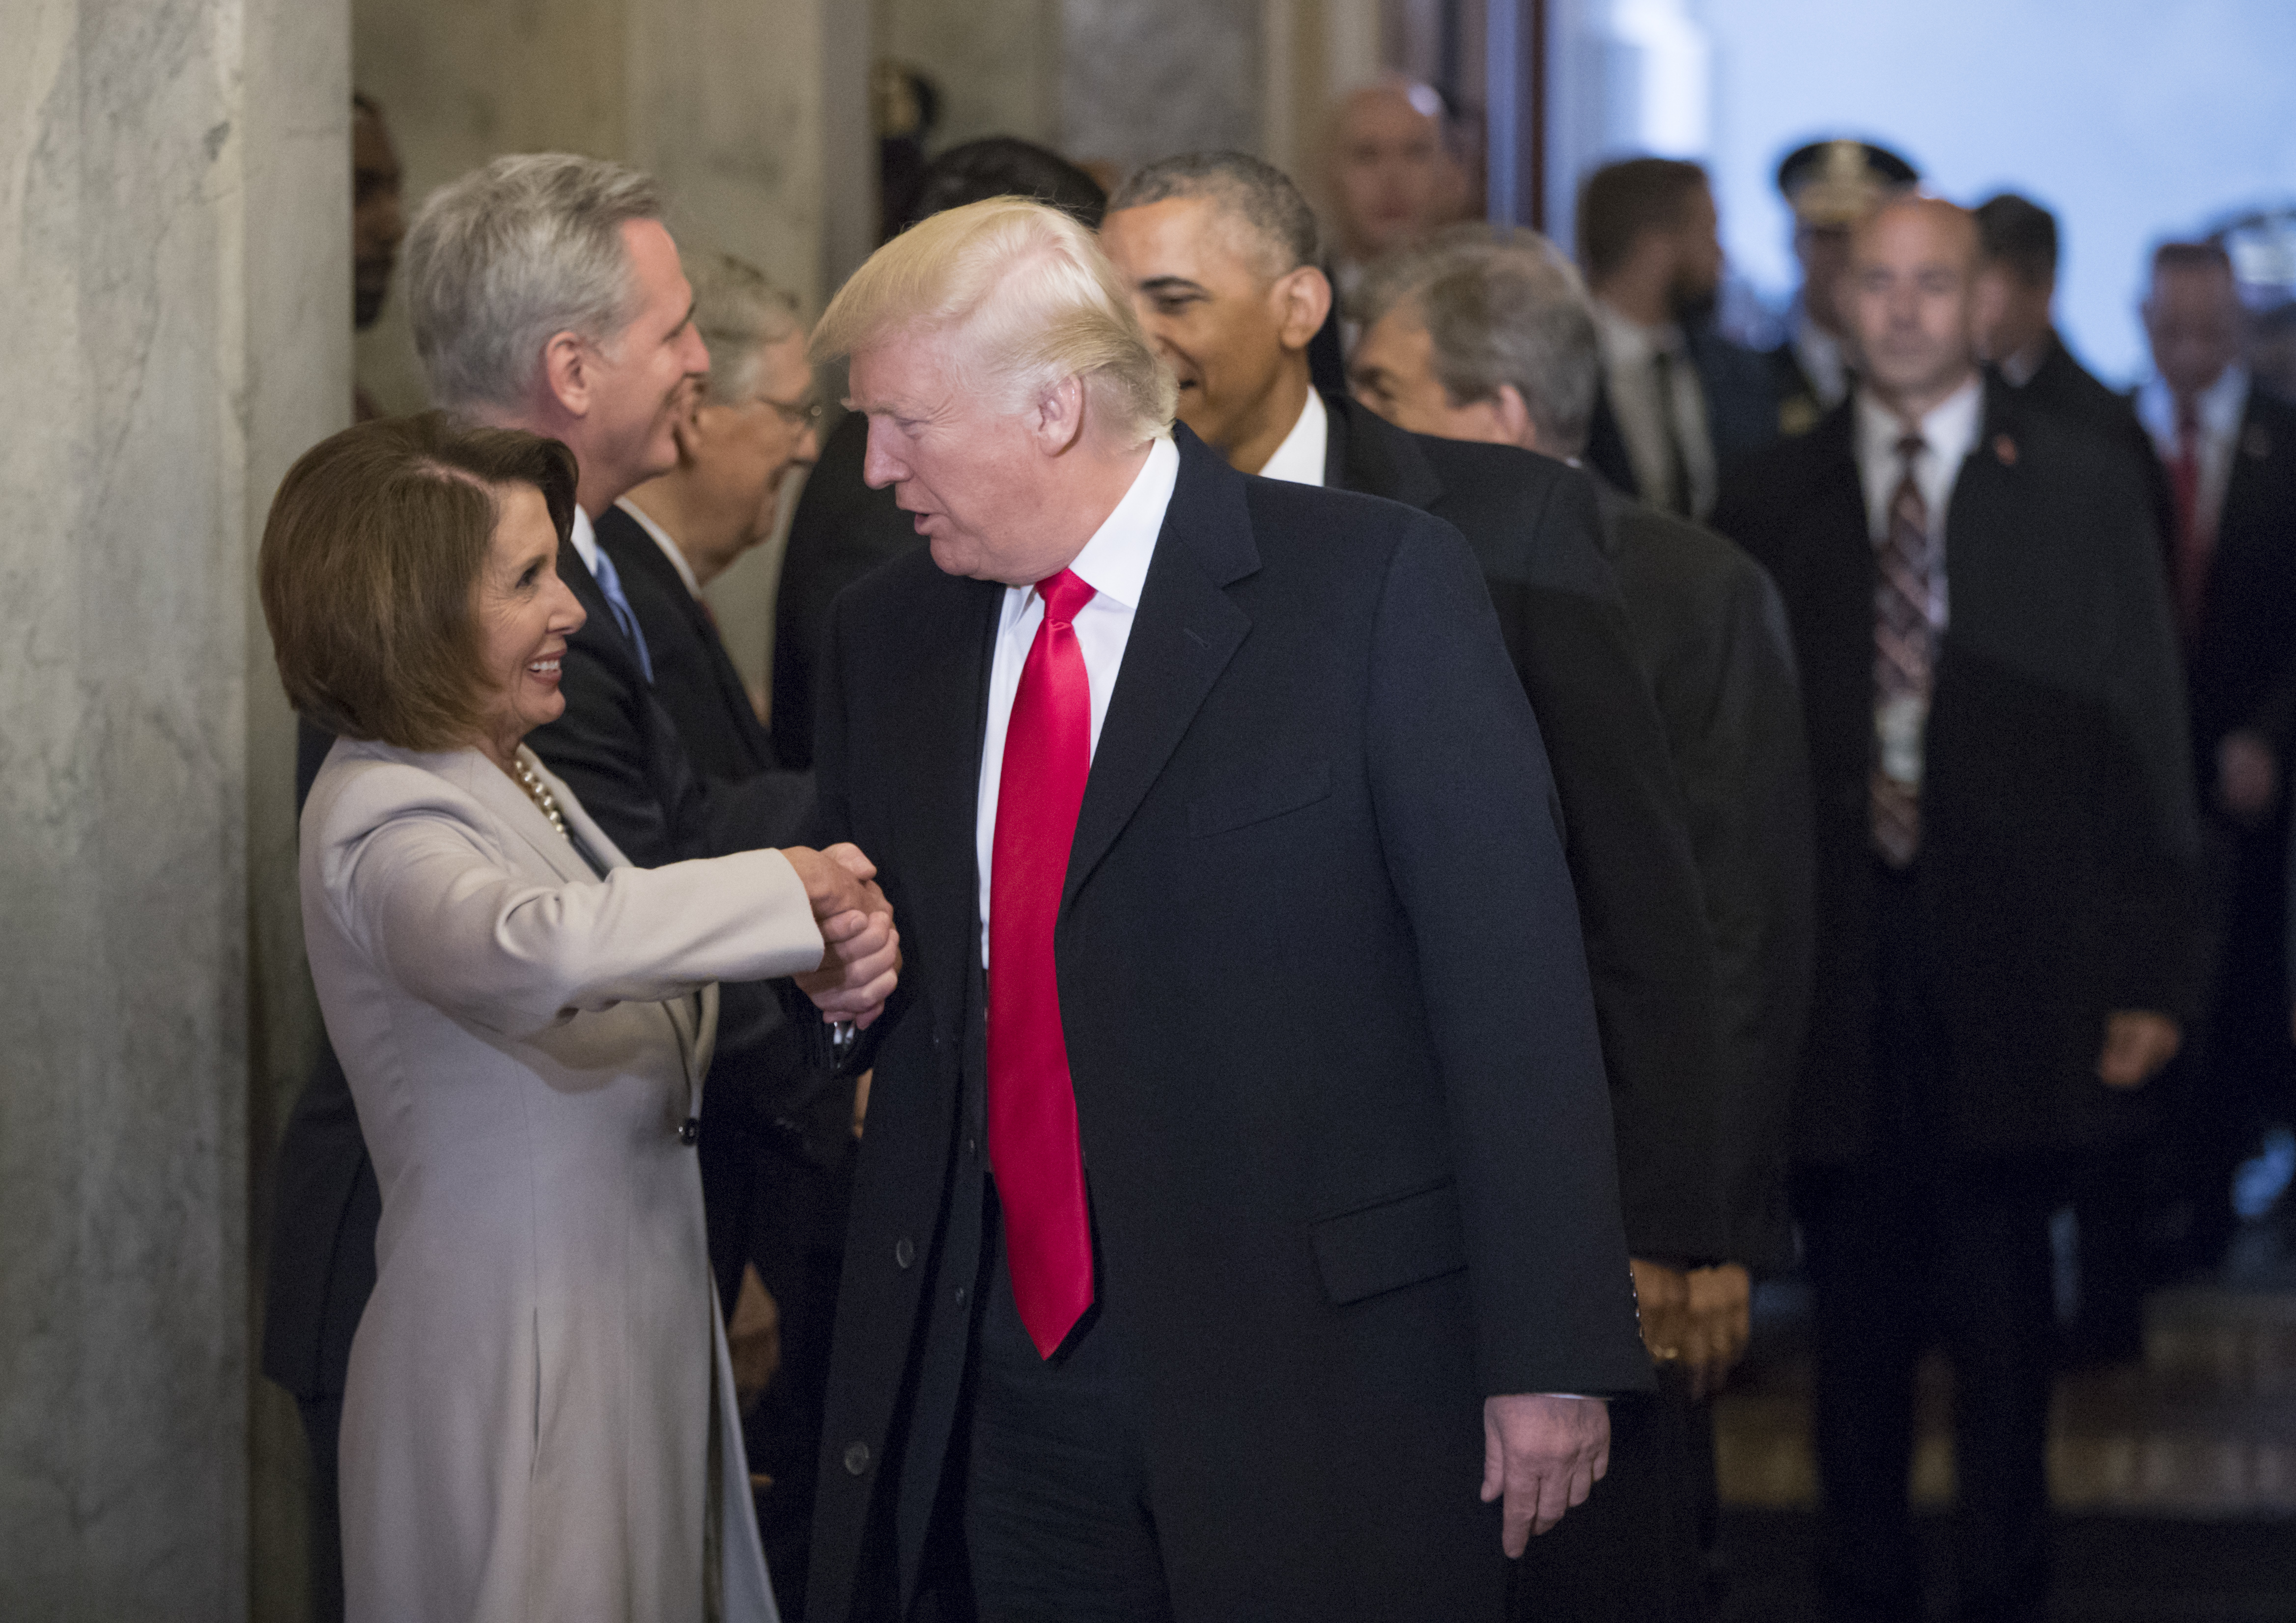 WASHINGTON, DC - JANUARY 20: President-elect Donald Trump (C) and President Barack Obama (R) are greeted by members of the Congressional leadership including House Minority Leader Nancy Pelosi (D-CA) as they arrive for Trump's inauguration ceremony at the Capitol on January 20, 2017 in Washington, DC. Trump became the 45th president of the United States. (Photo by J. Scott Applewhite - Pool/Getty Images)